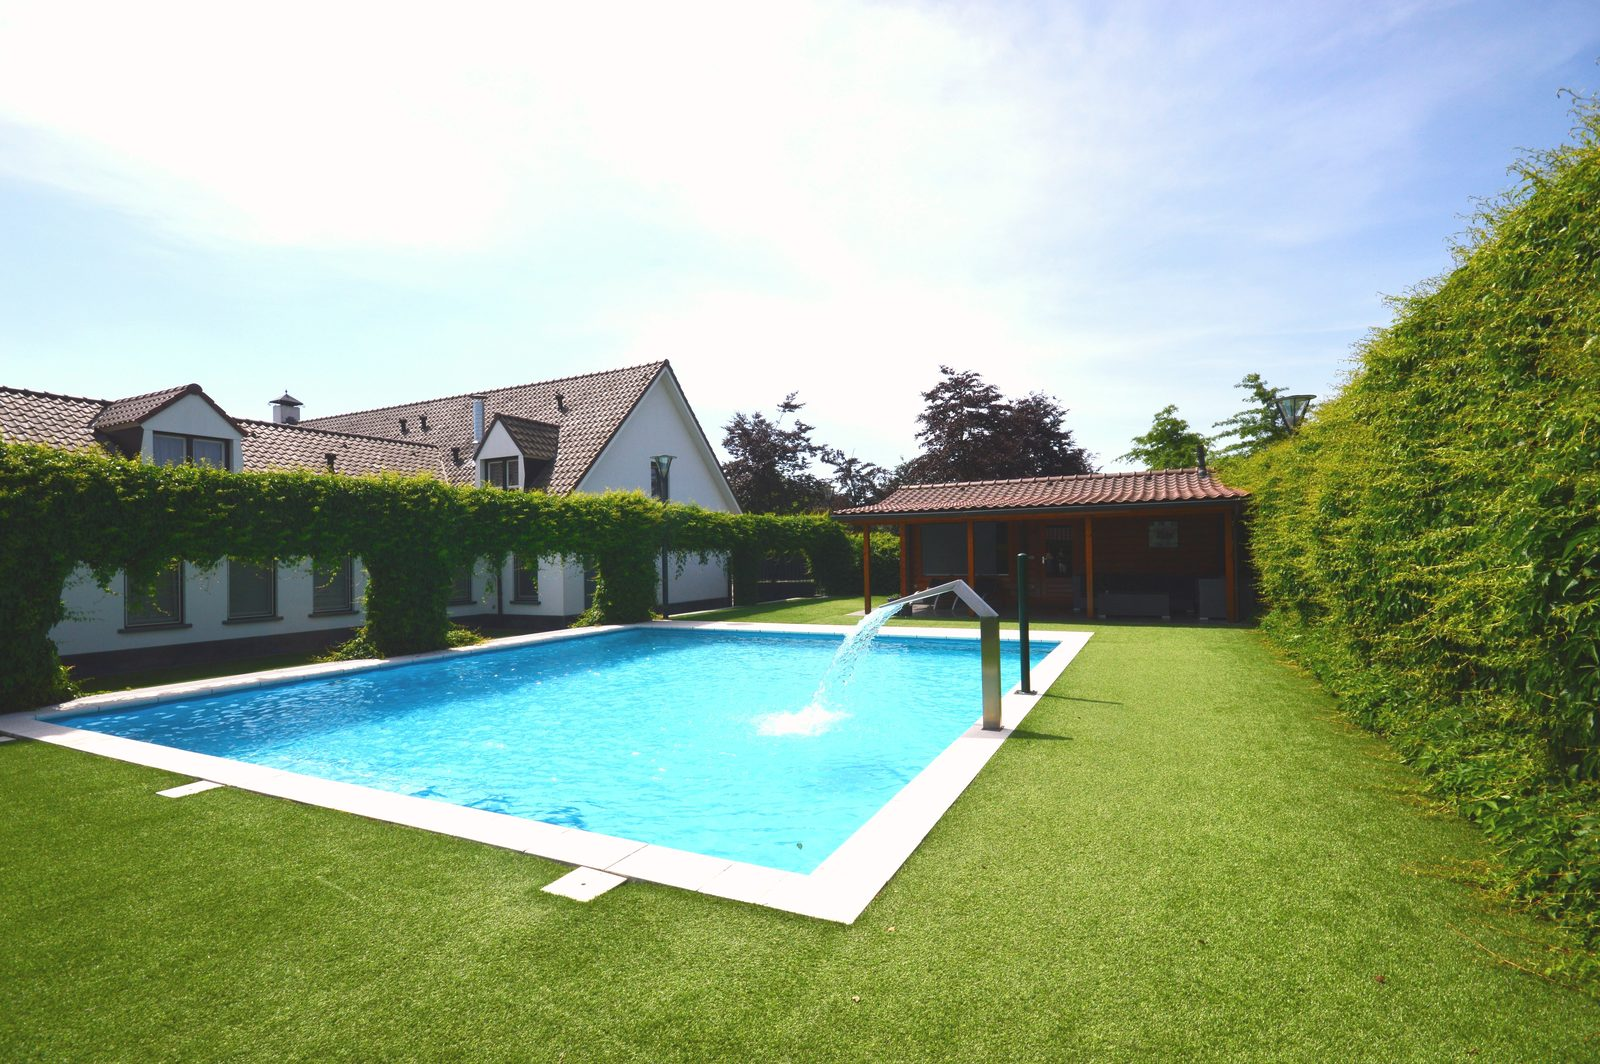 Holiday Homes With Private Swimming Pool Book Now On Groepen Nl